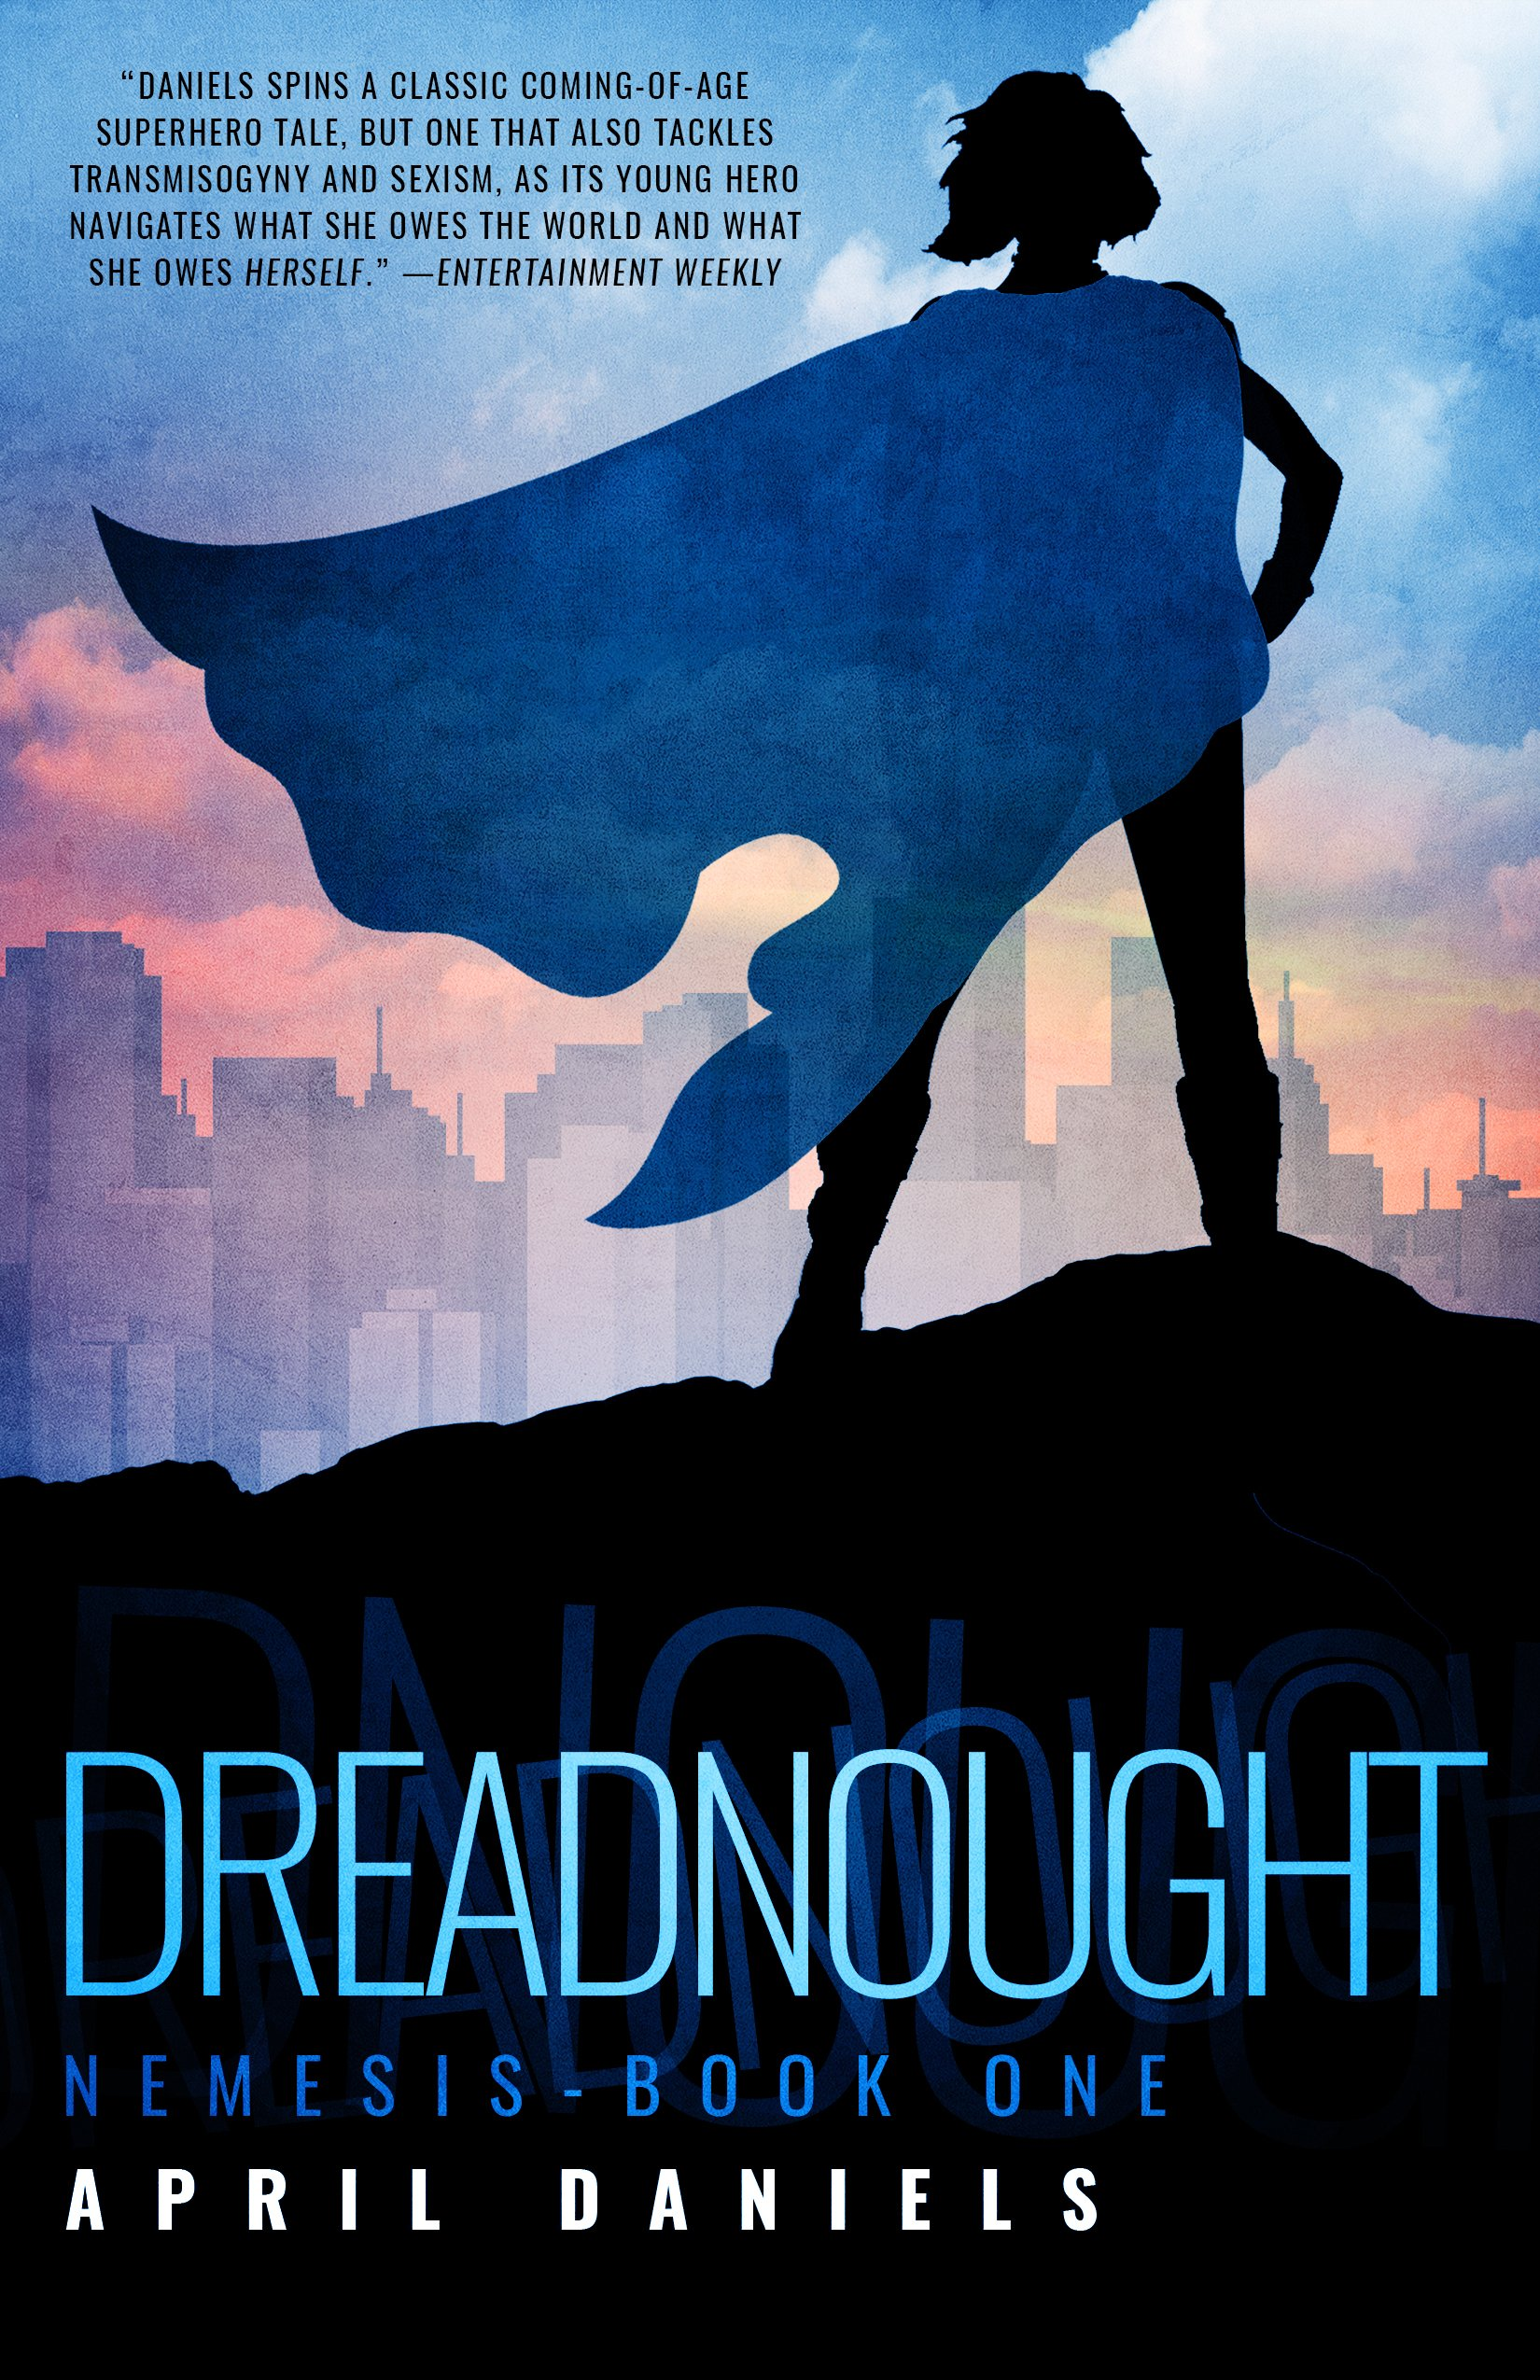 "Cover of April Daniel's Dreadnought, showing the silhouette of the main character with a cape as she faces the city skyline. Text in the top left: ""Daniels spins a classic coming-of-age superhero tale, but one that also tackles transmisogyny and sexism, as its young hero navigates what she owes the world and what she owes herself."" -Entertainment Weekly Text on the bottom: Dreadnought 